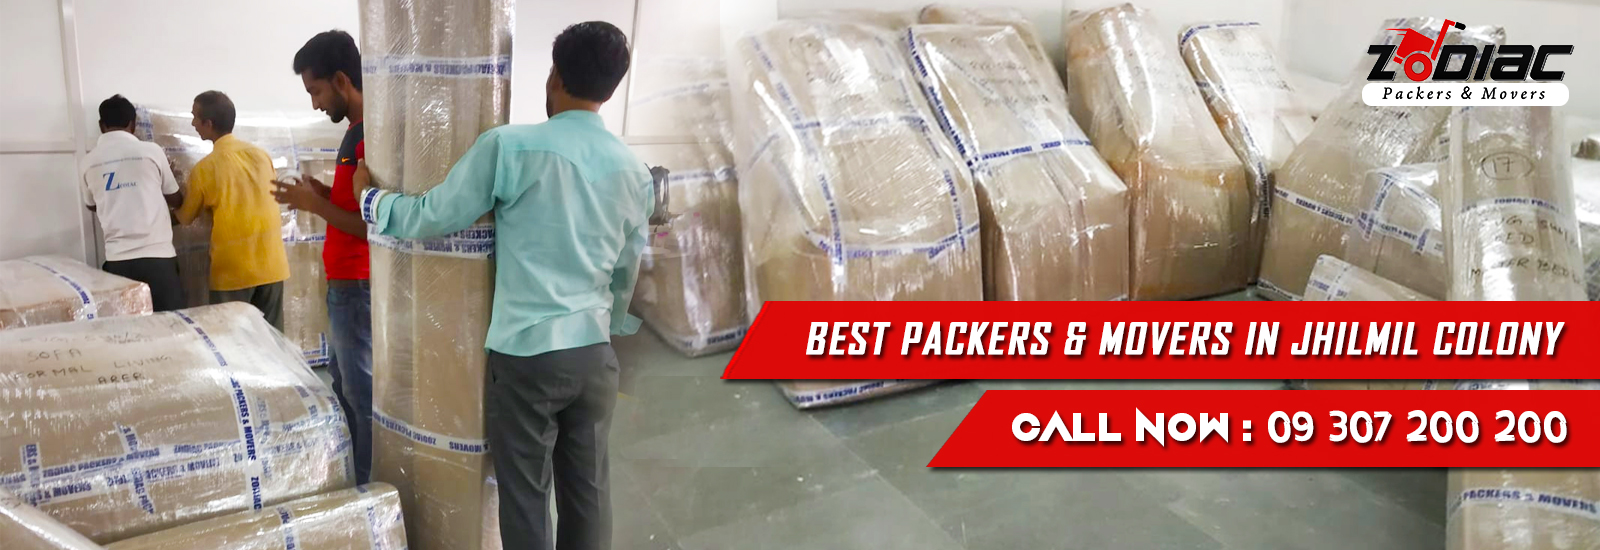 Packers and Movers in Jhilmil Colony